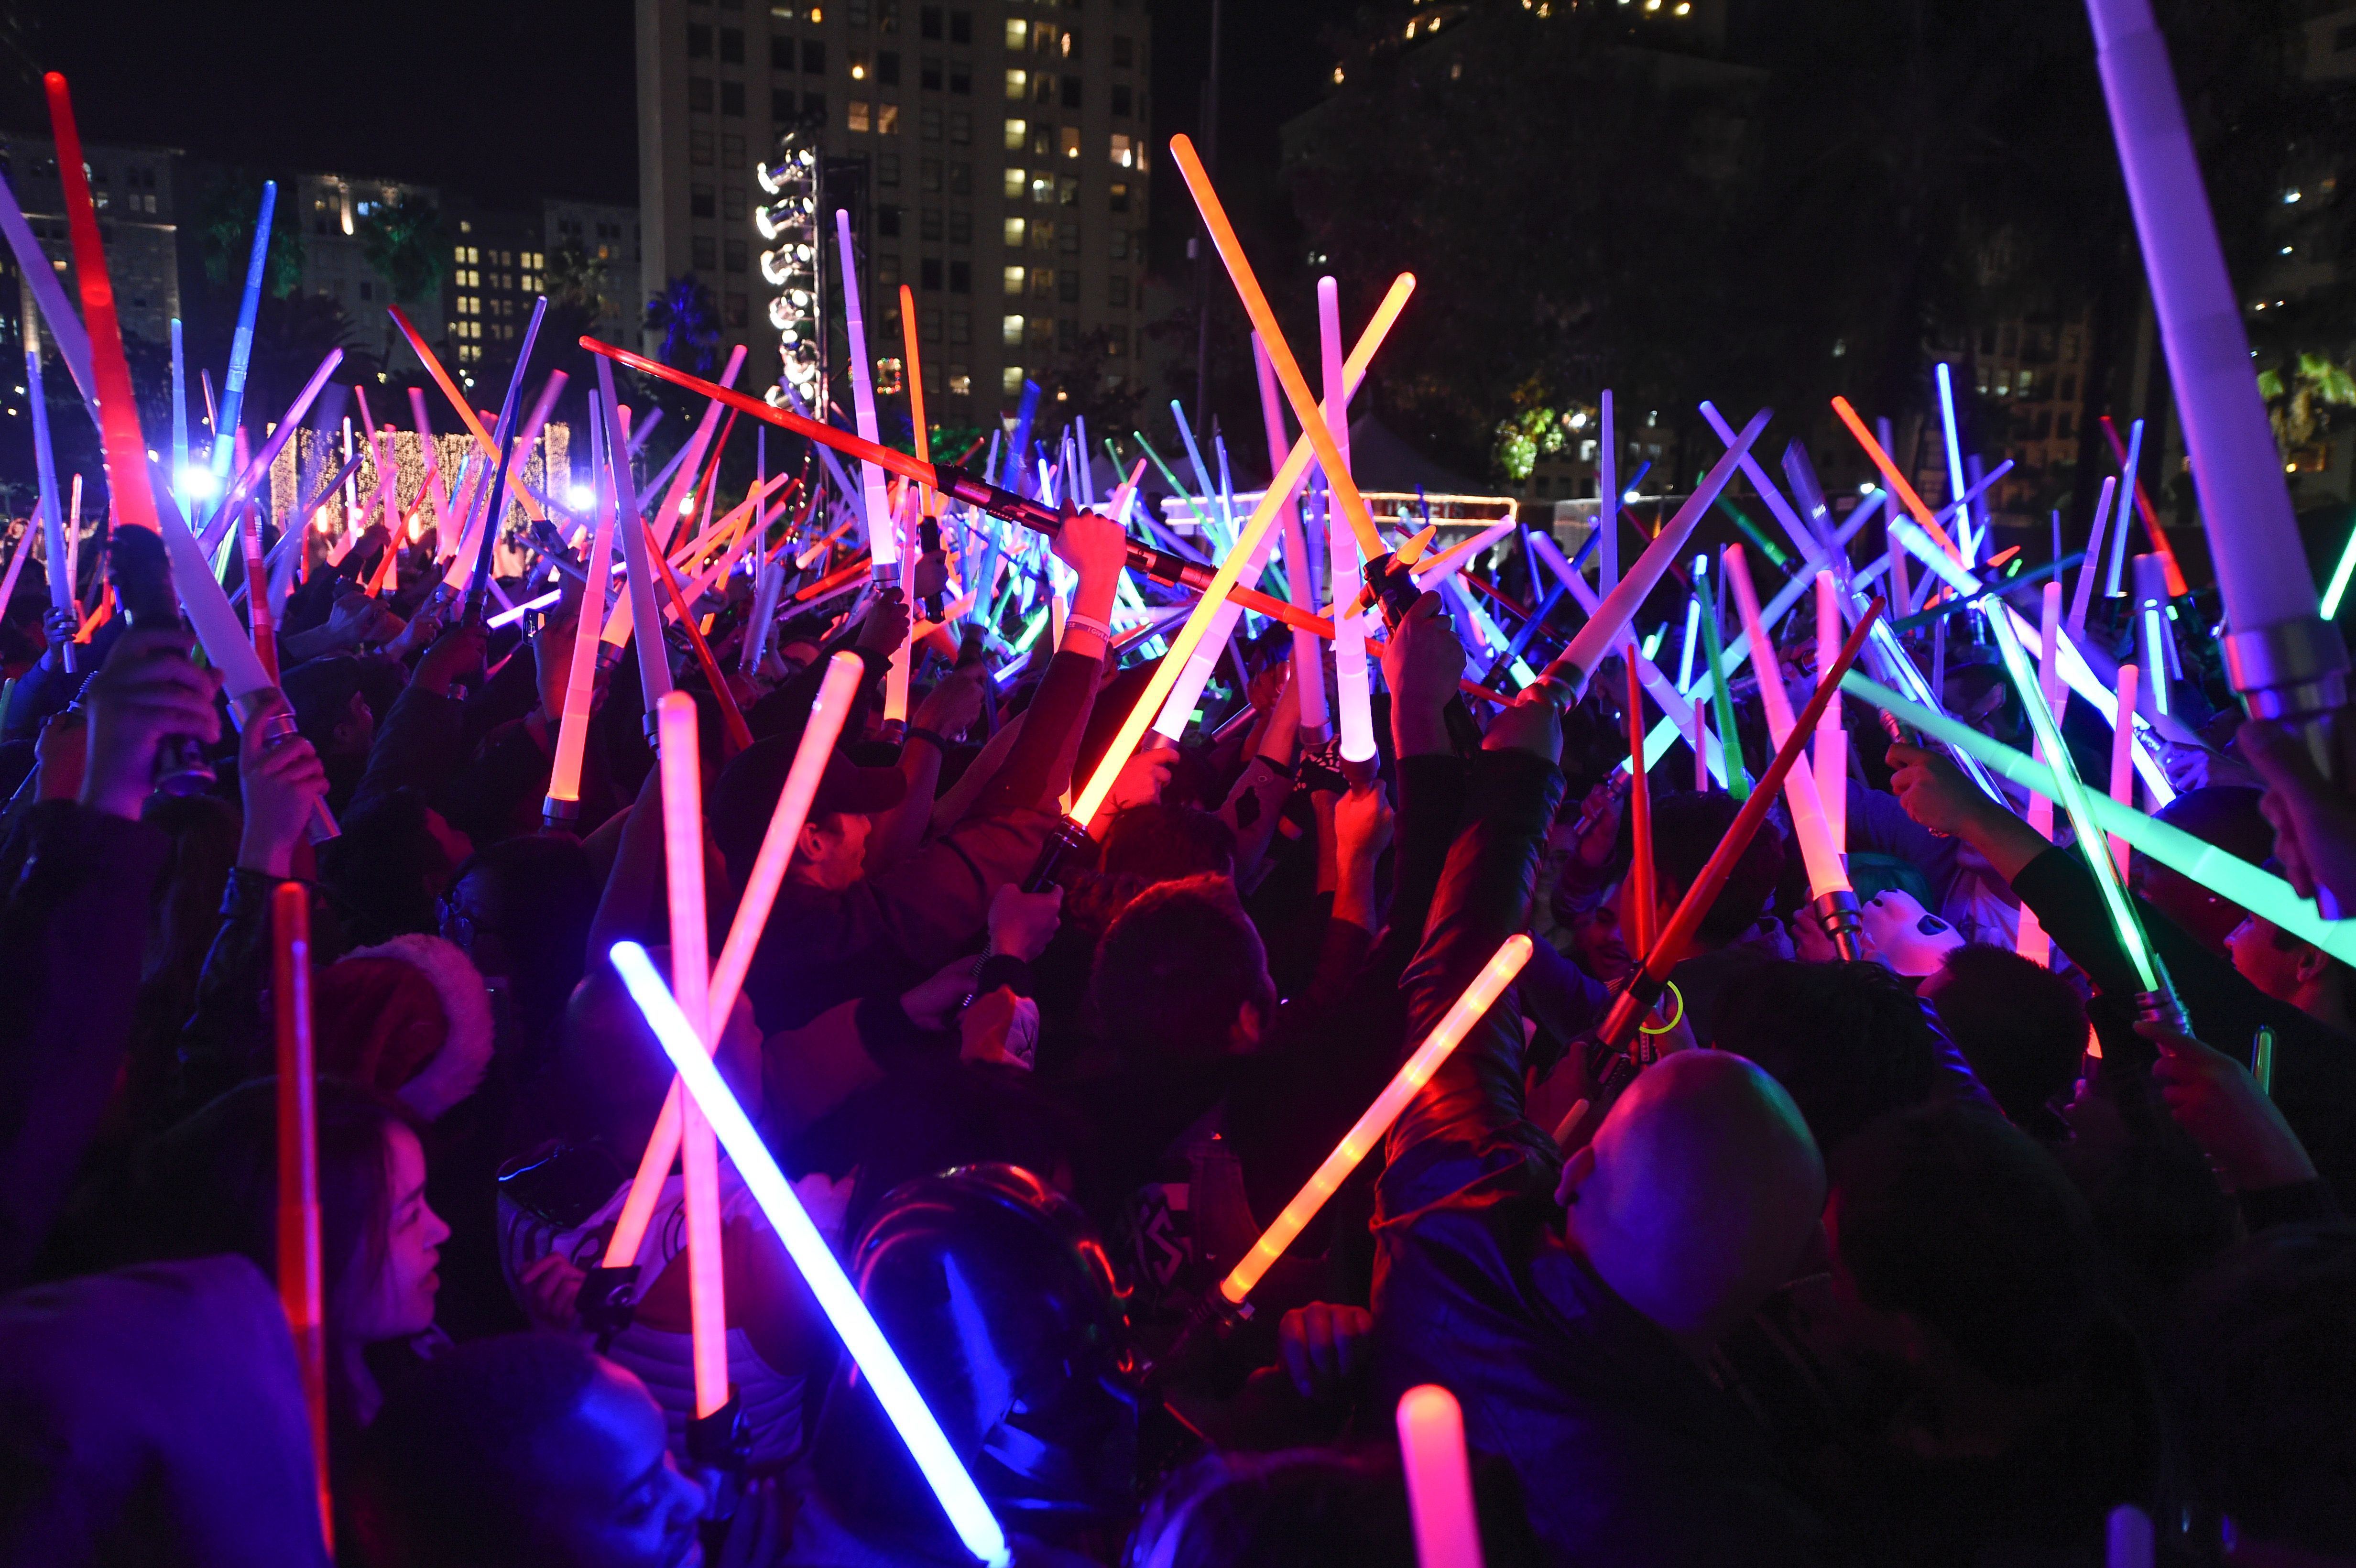 'Star Wars' fans raise their lightsabers in Pershing Square in downtown Los Angeles, Calif., on Dec. 18, 2015.